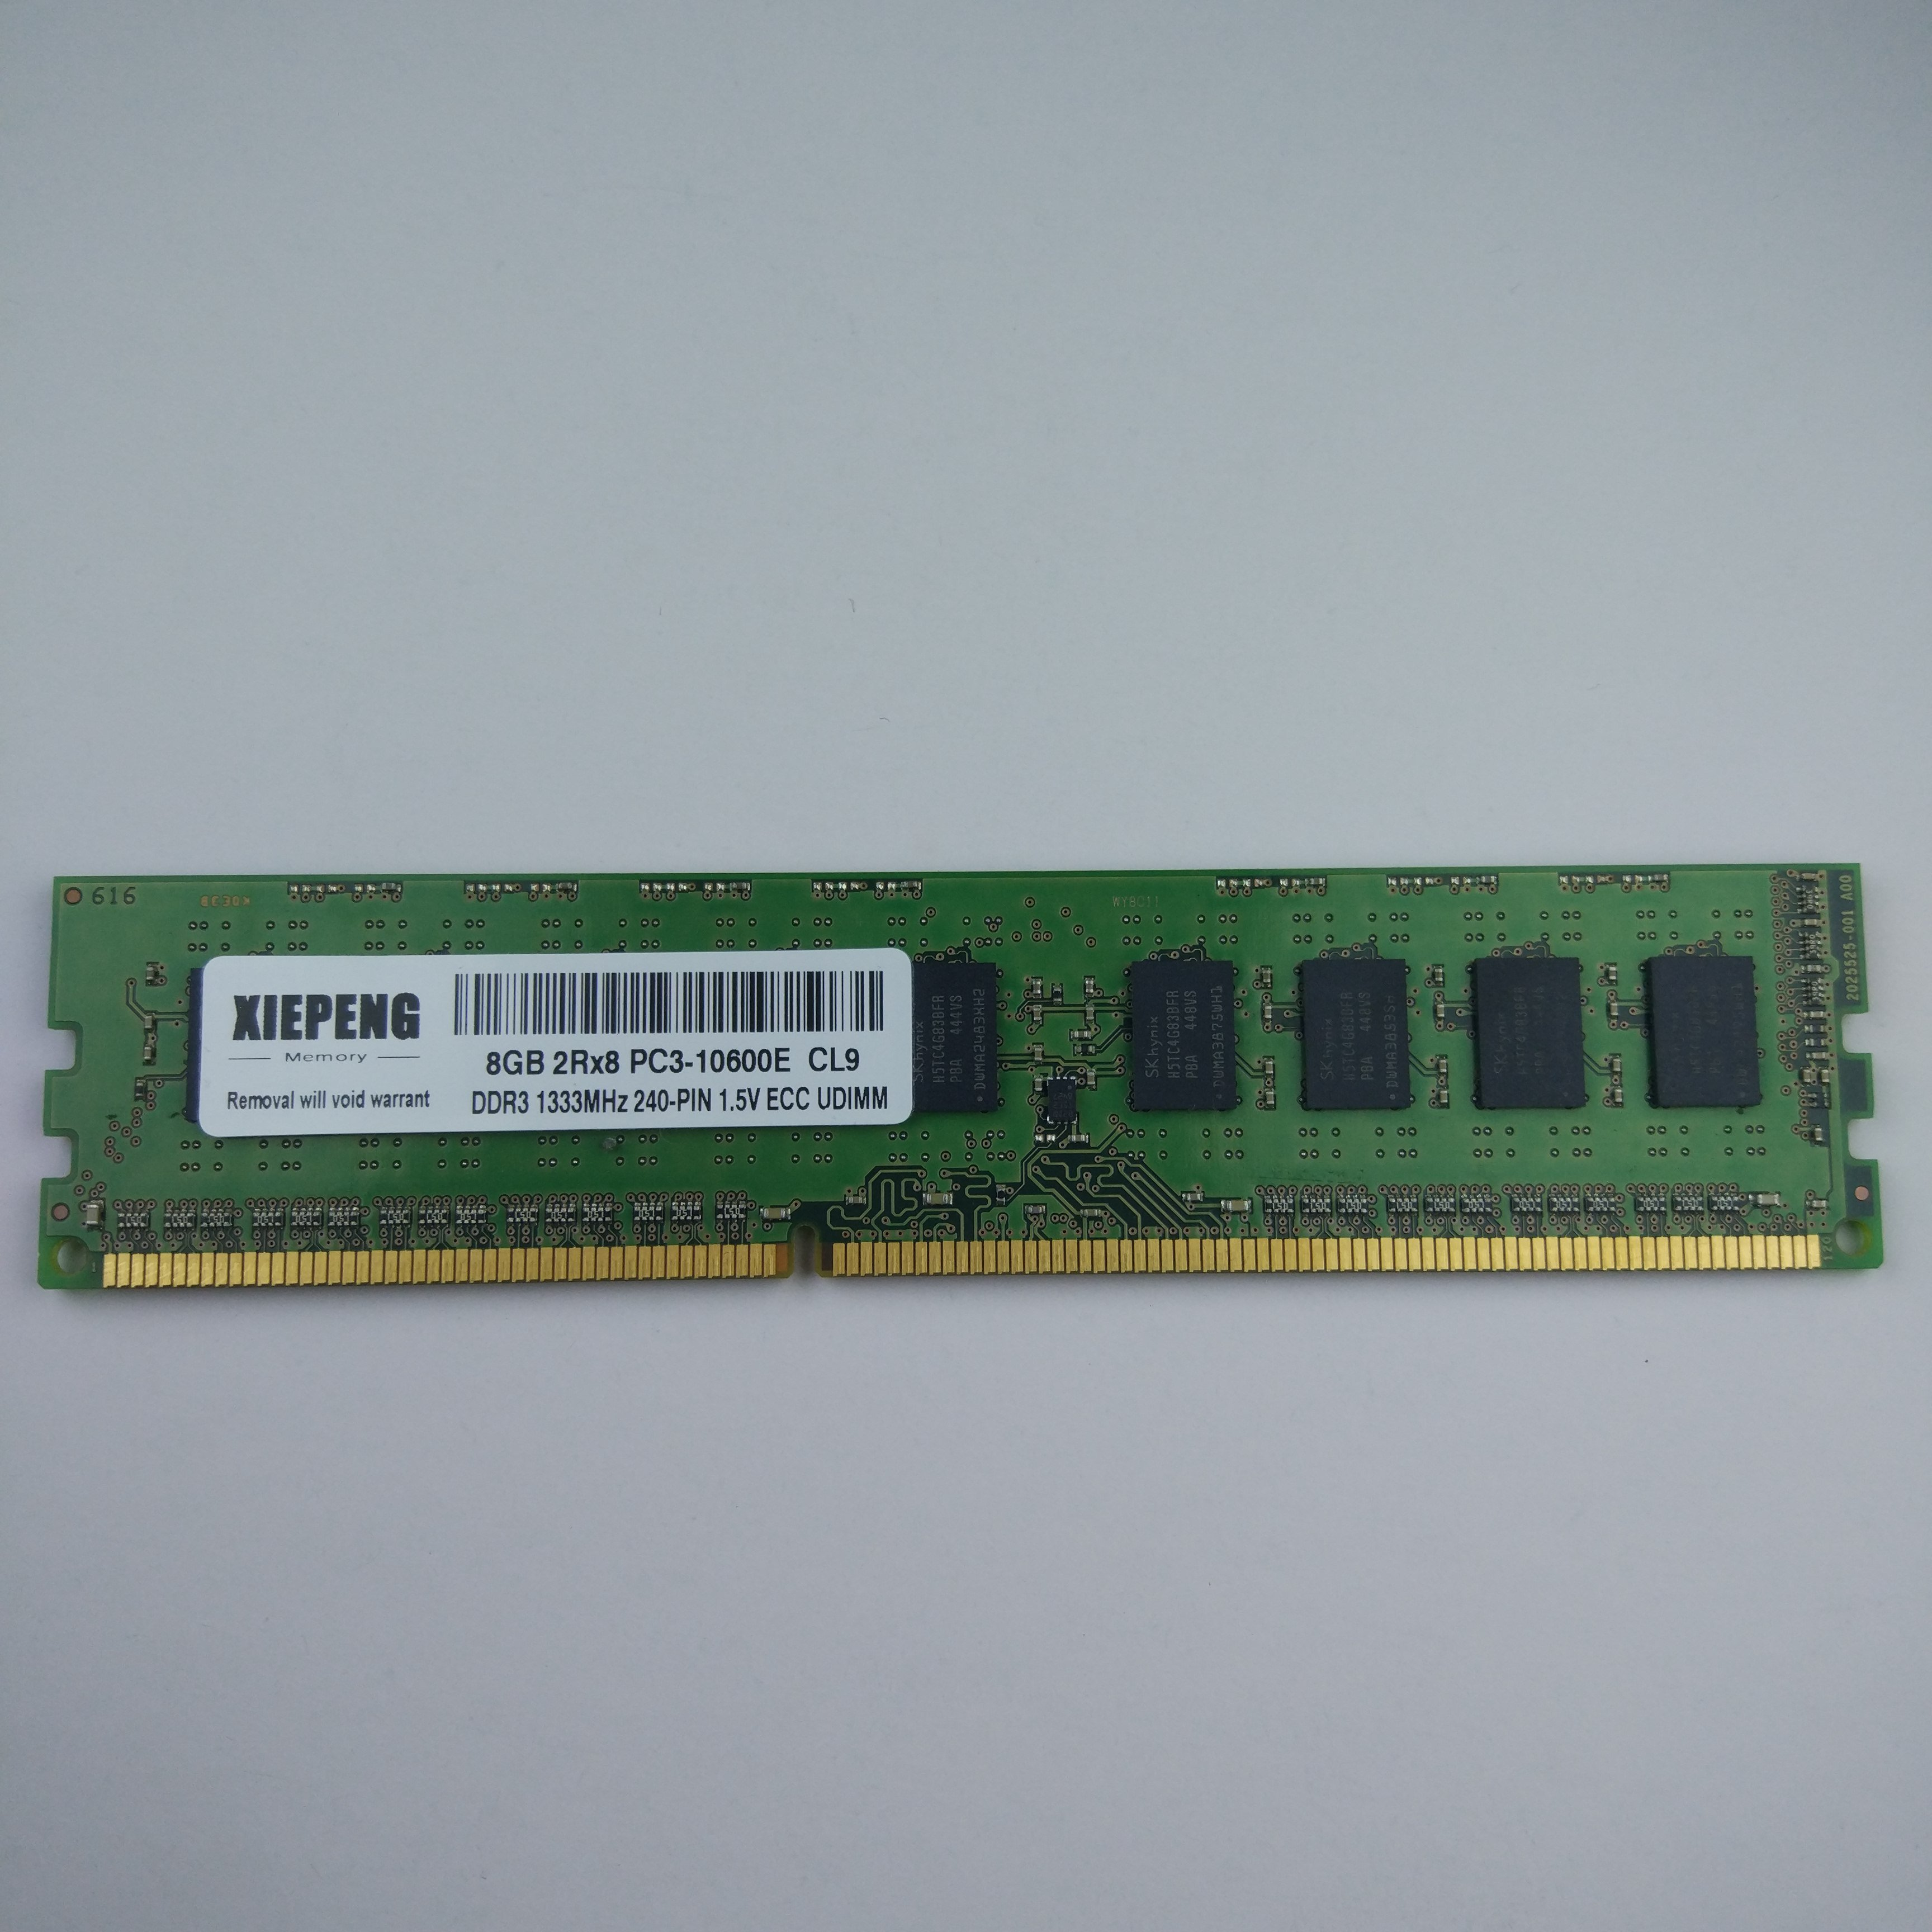 parts-quick 8GB Memory for Gateway Server GT350 F1 DDR3 1333MHz PC3-10600 ECC Registered Server DIMM